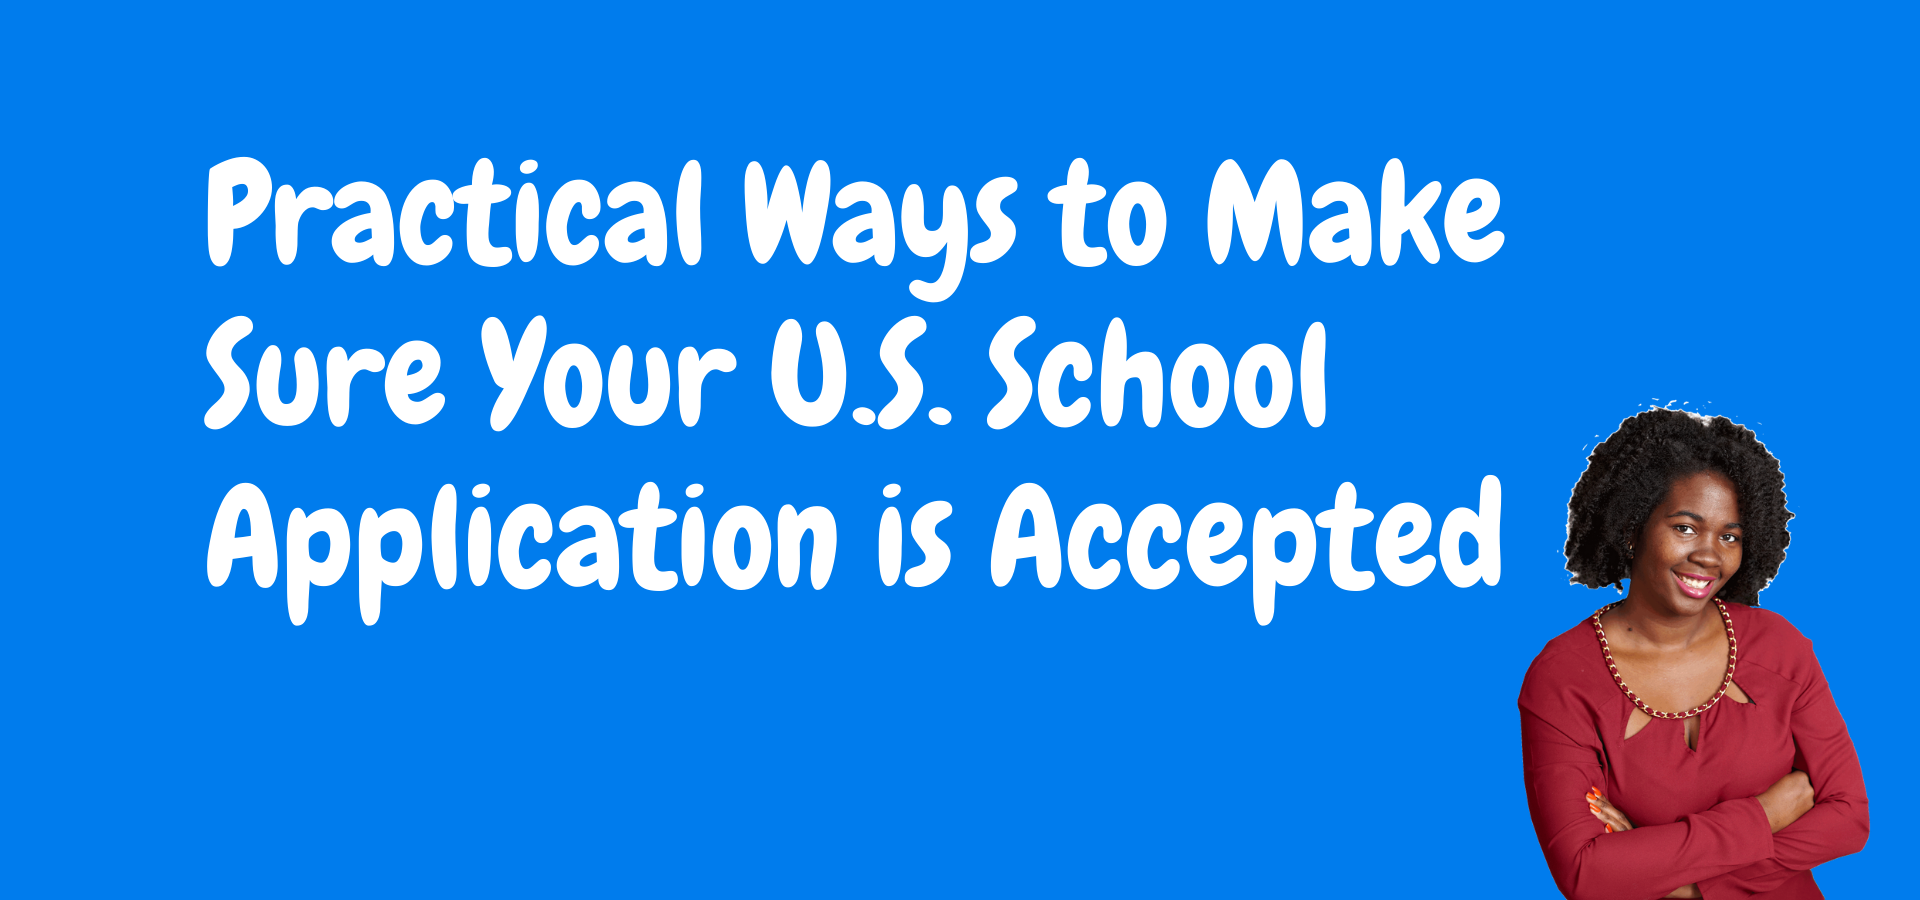 Practical Ways to Make Sure Your U.S. School Application is Accepted